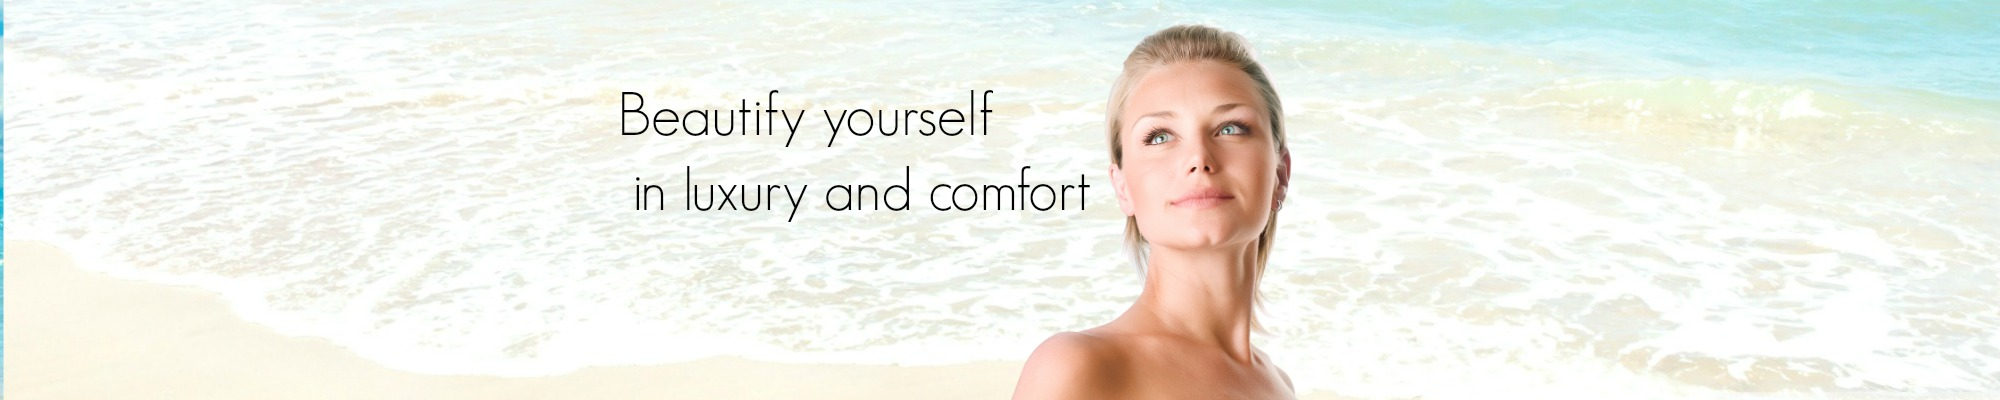 Beautify you cosmetic surgery travel